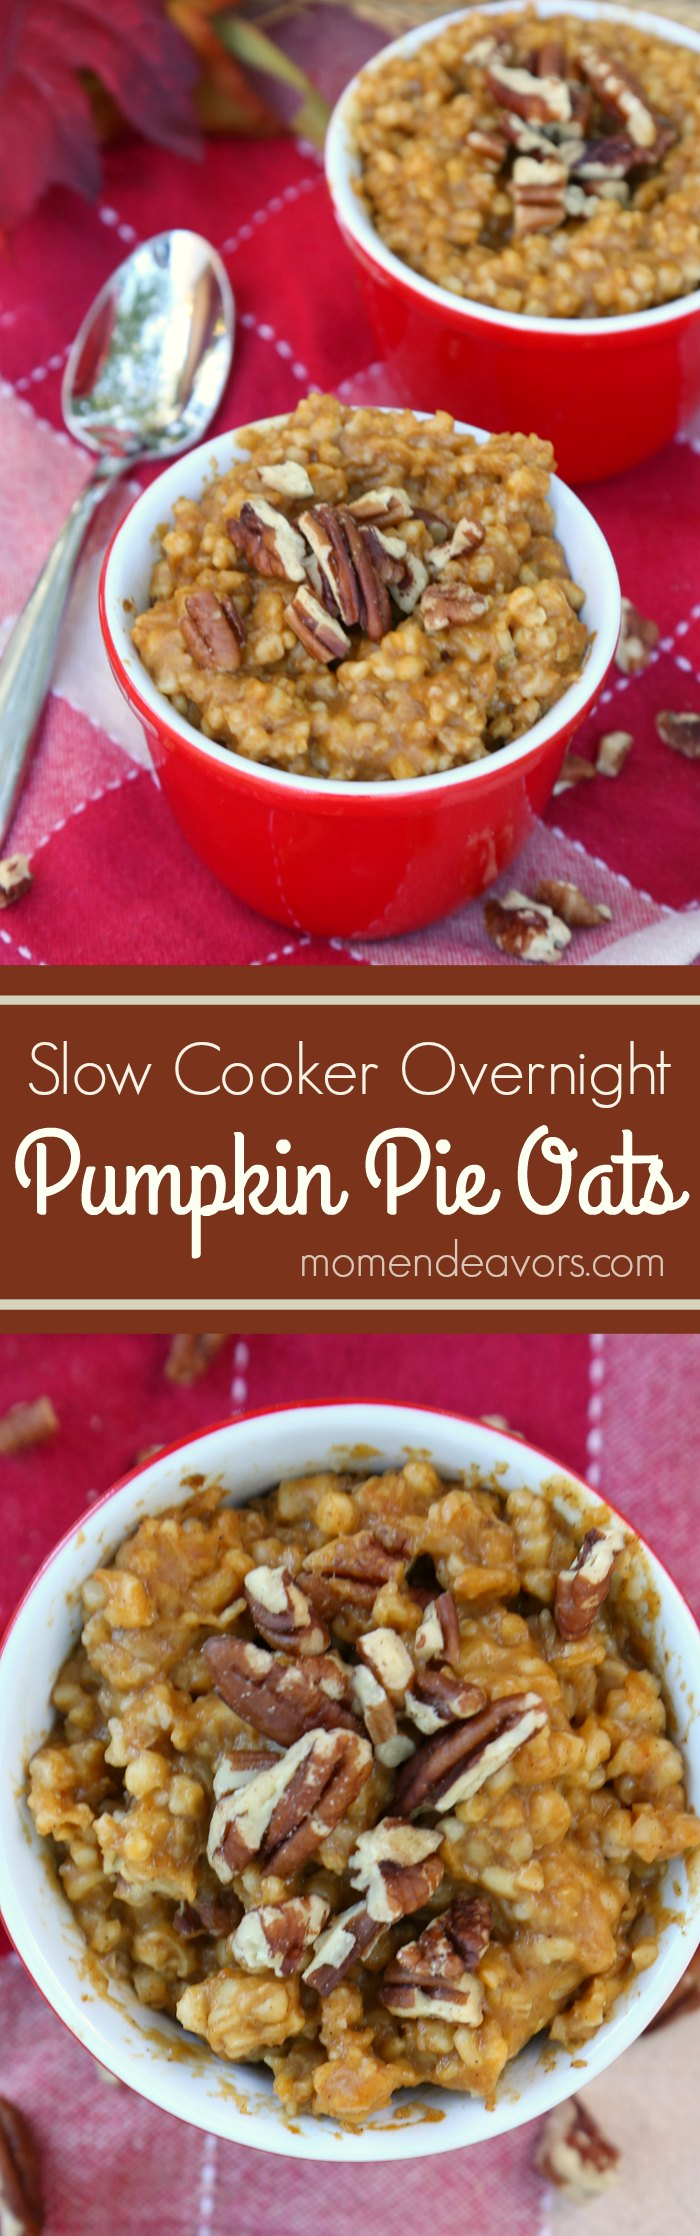 slow-cooker-pumpkin-pie-steel-cut-oats